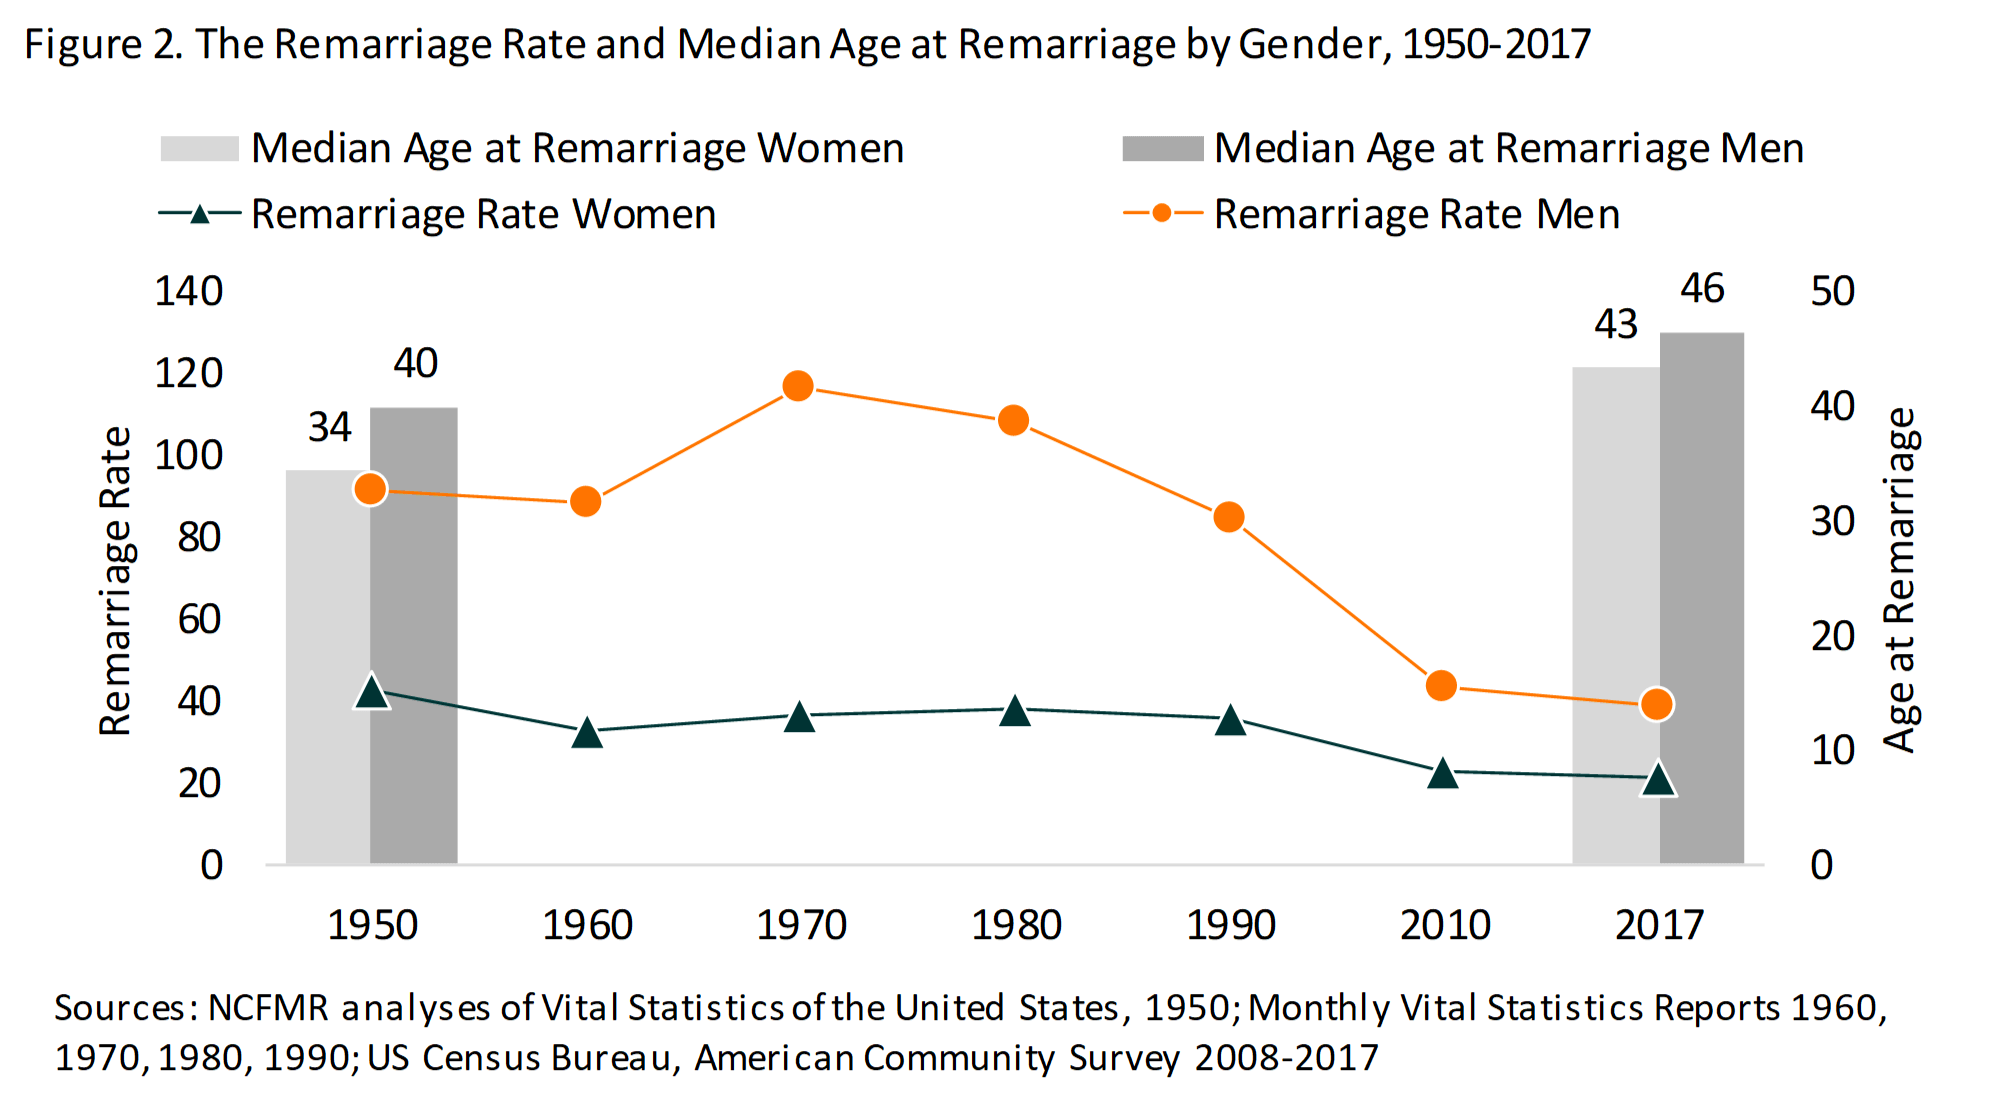 Line chart showing remarriage rate and median age at remarriage by gender from '50-'17